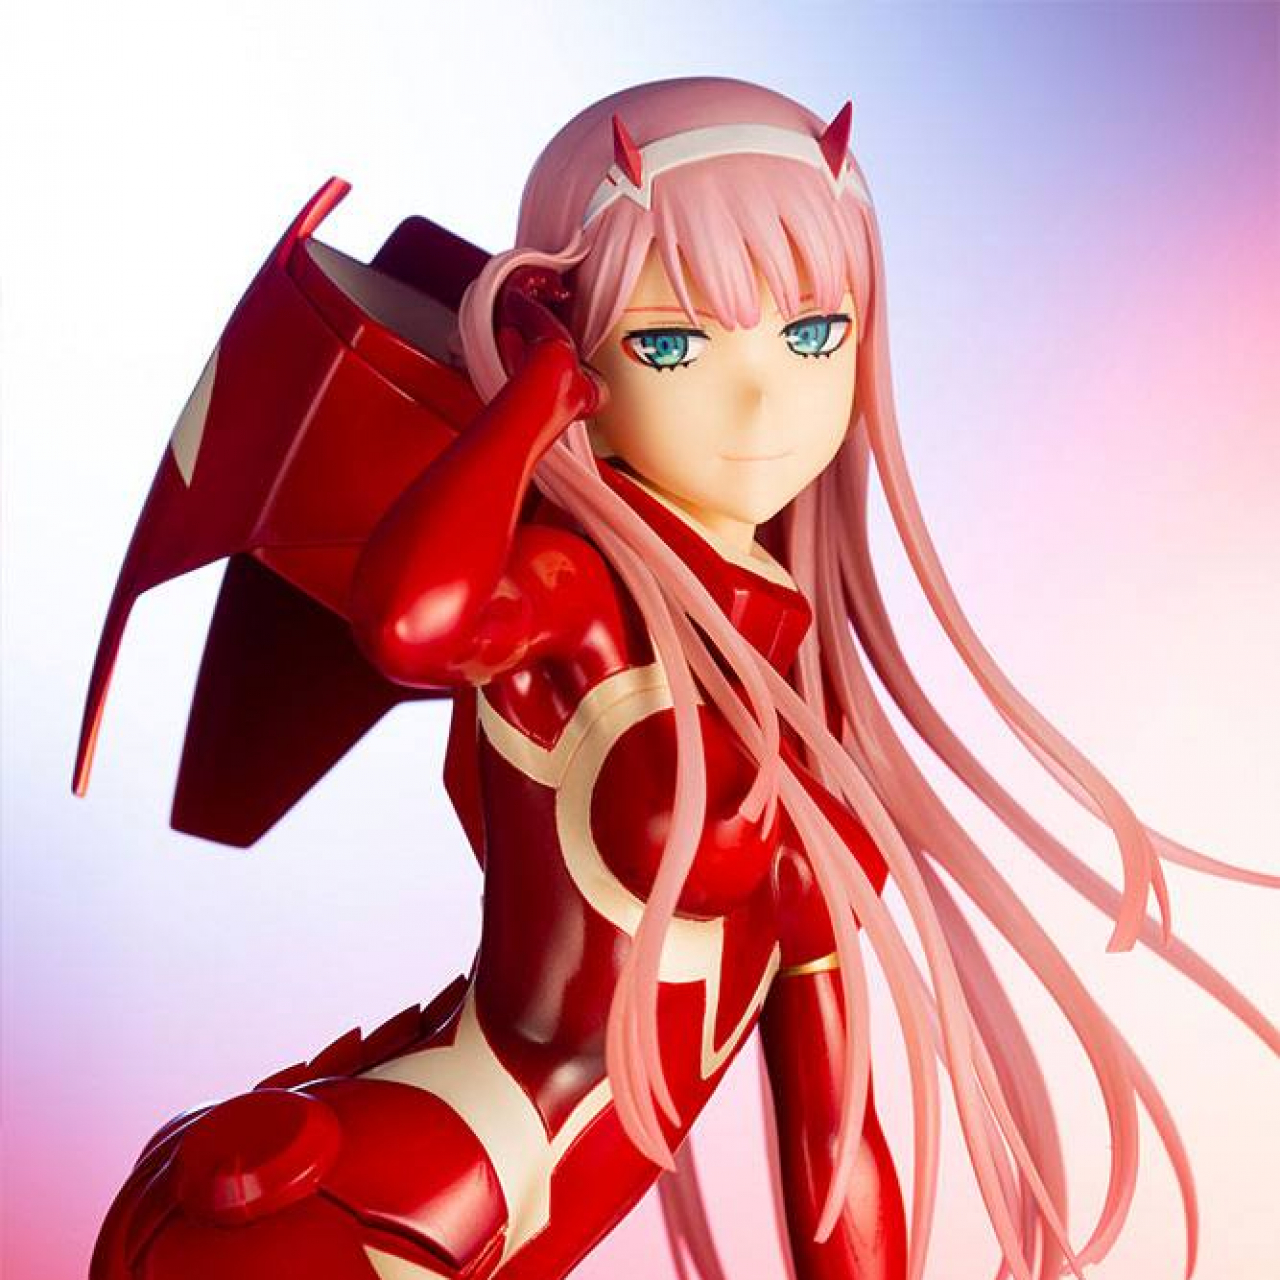 Darling in the FranXX: Zero Two (17cm, 1/7 scale)